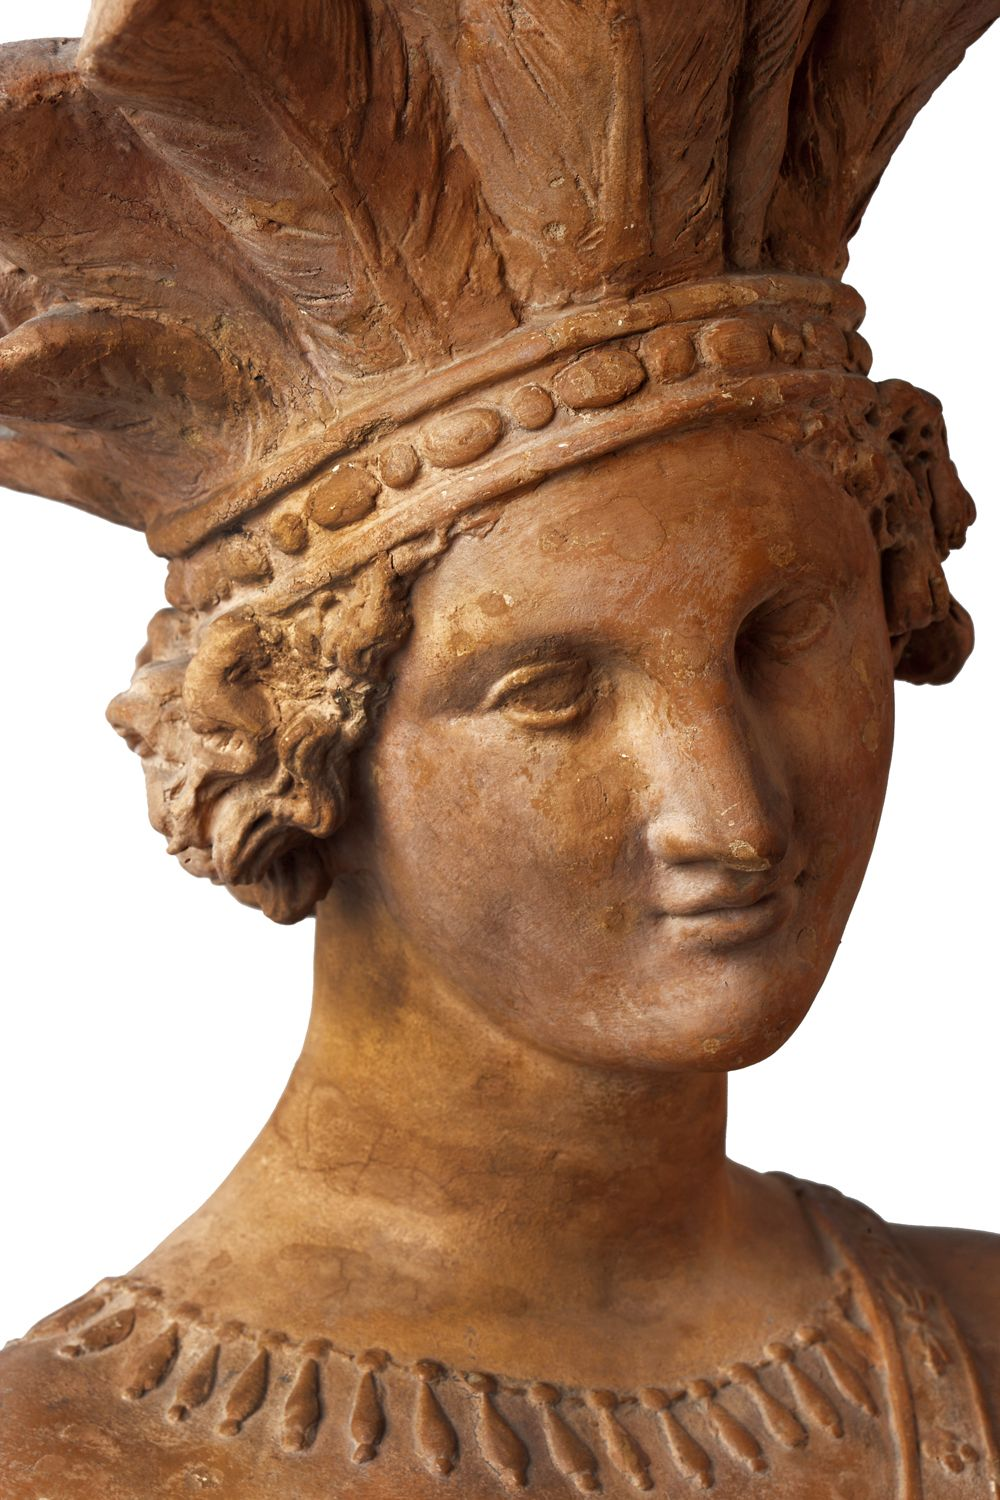 Amérique, ca. 1840. Terracotta. Bequest of James Hazen Hyde, New-York Historical Society, 1960.40[dup]. Detail. #neverthelessshepersisted